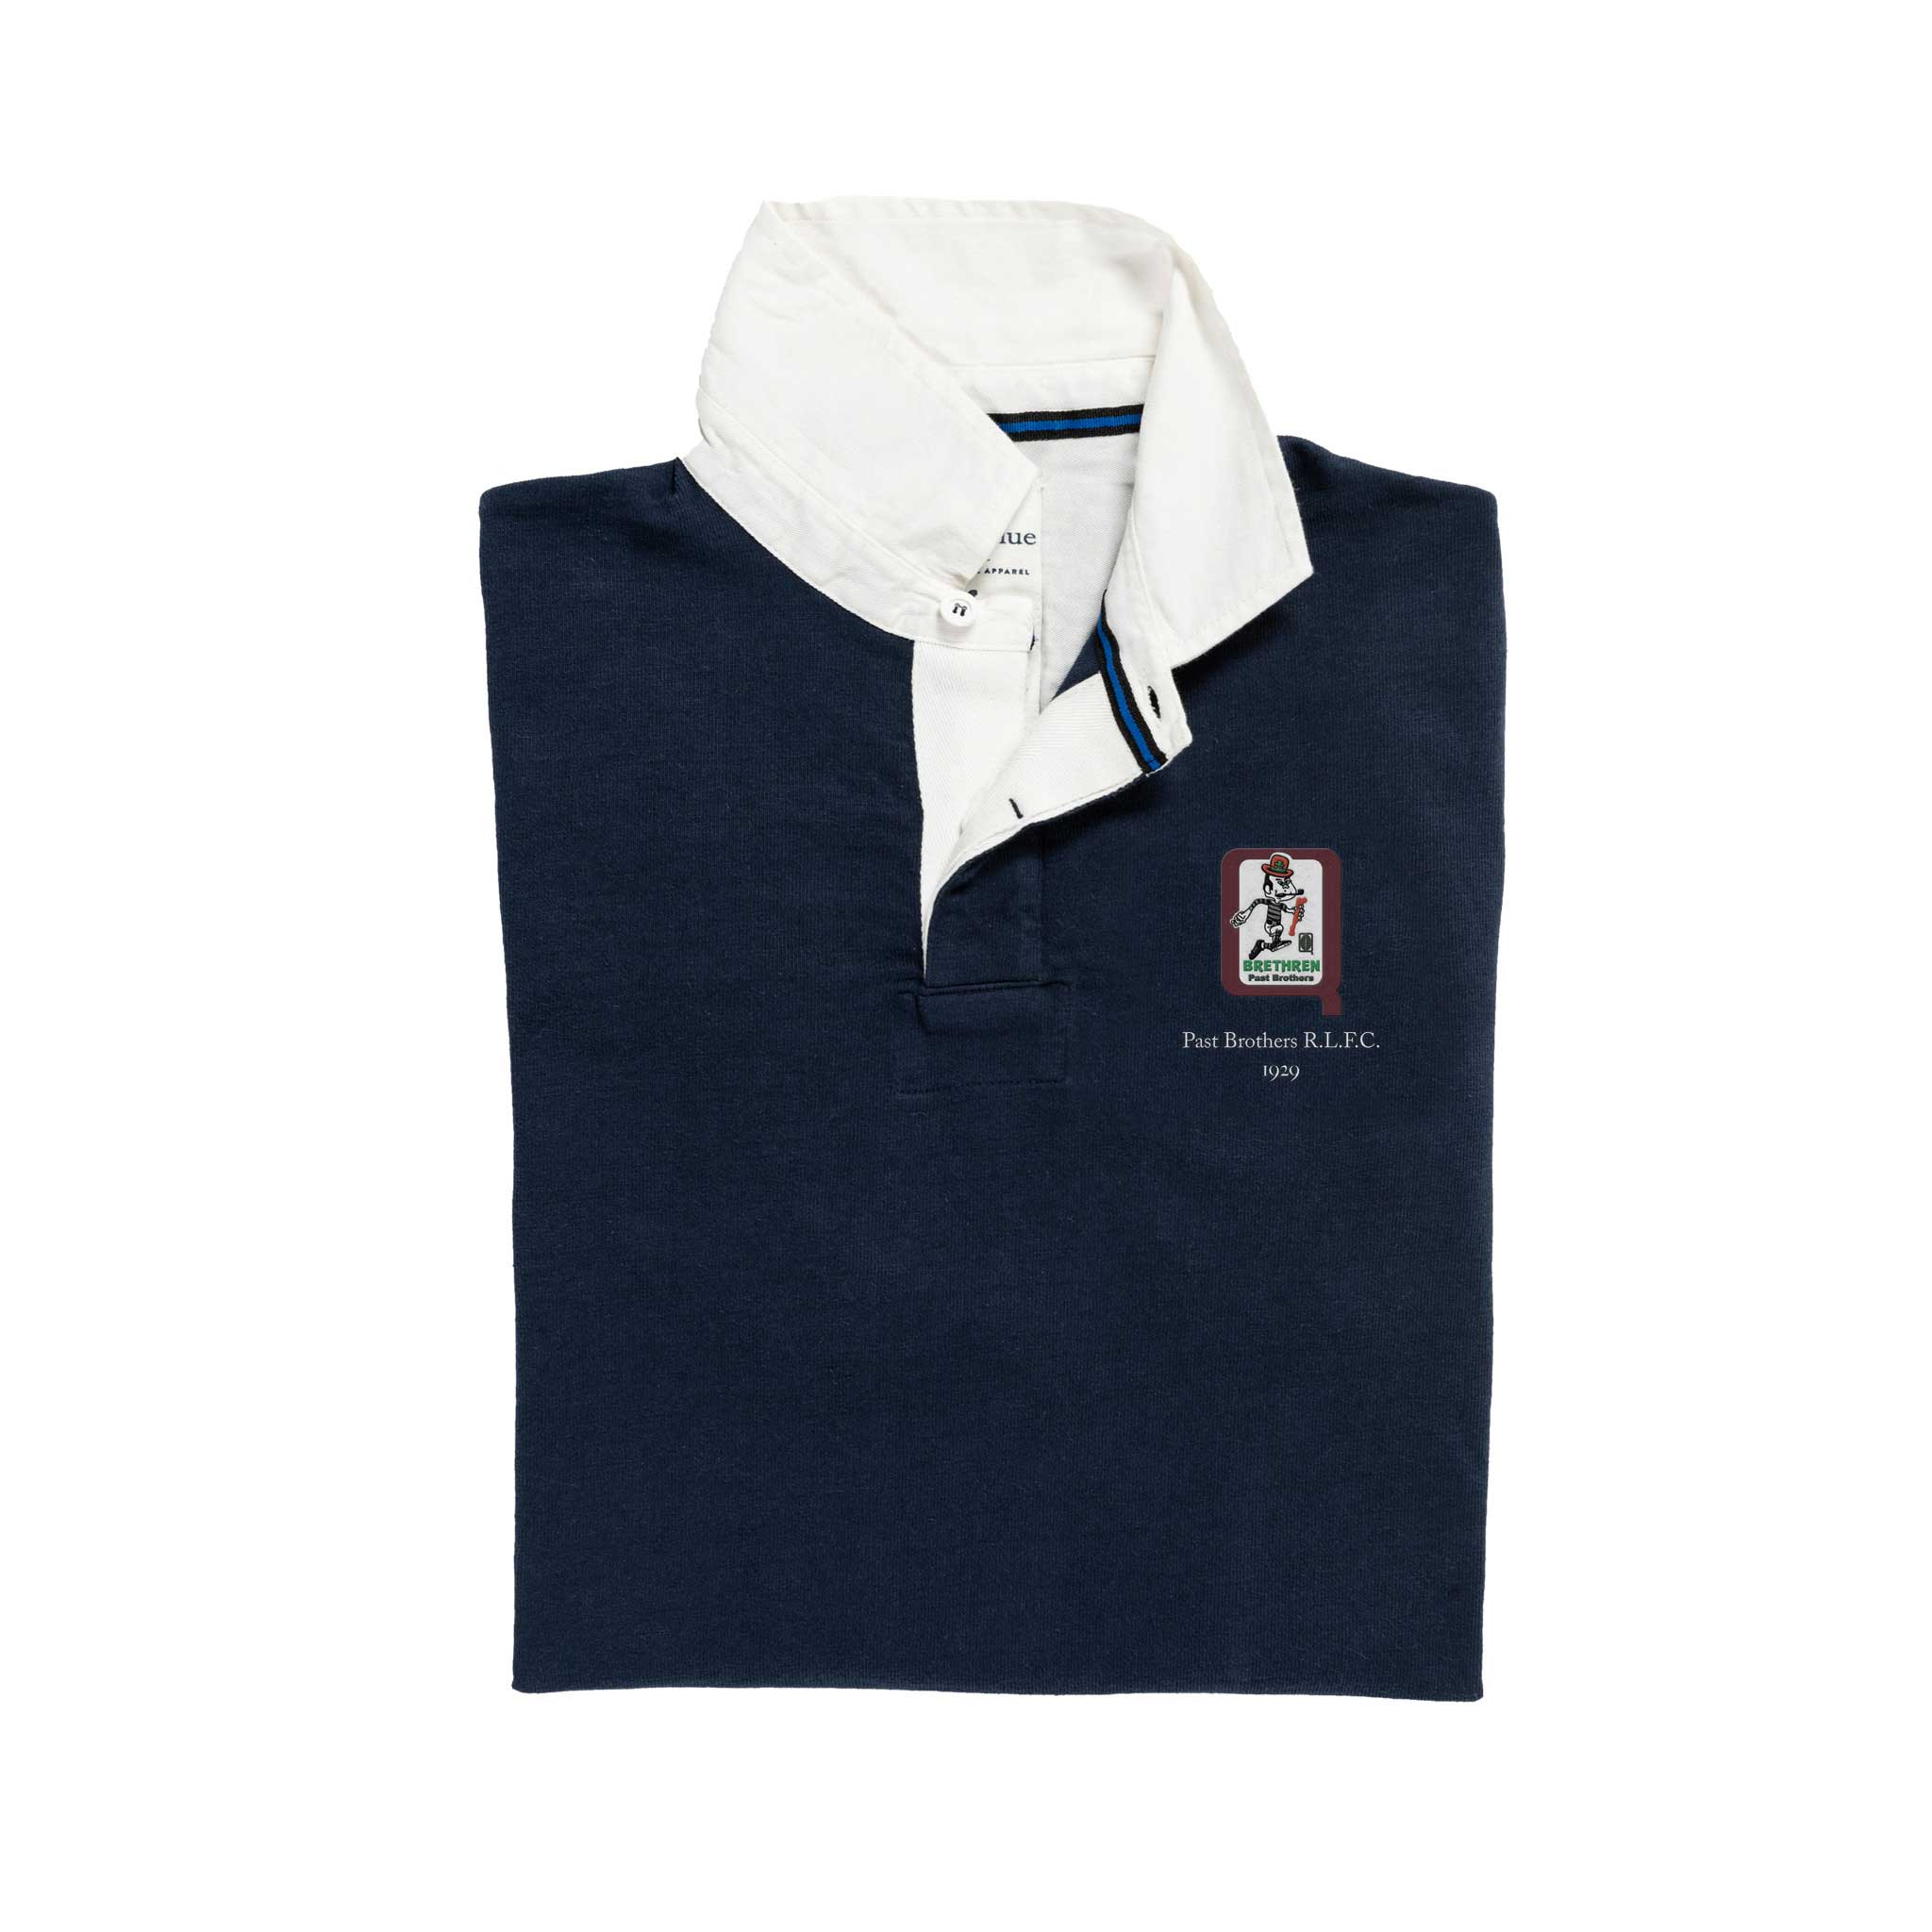 Past Brothers 1929 Rugby Shirt_Folded